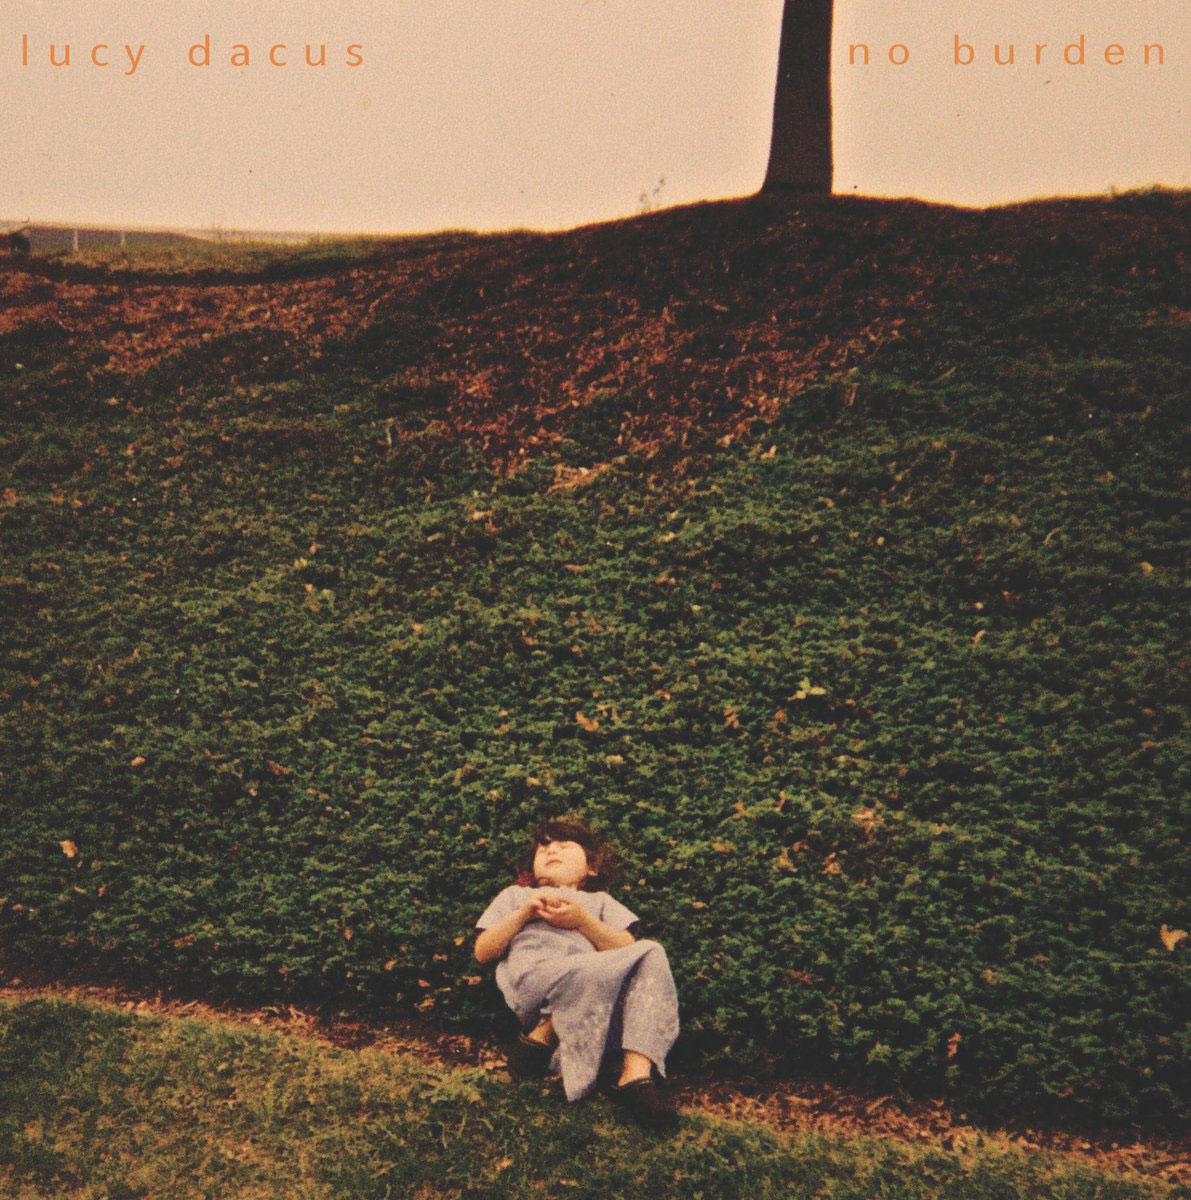 No Burden by Lucy Dacus